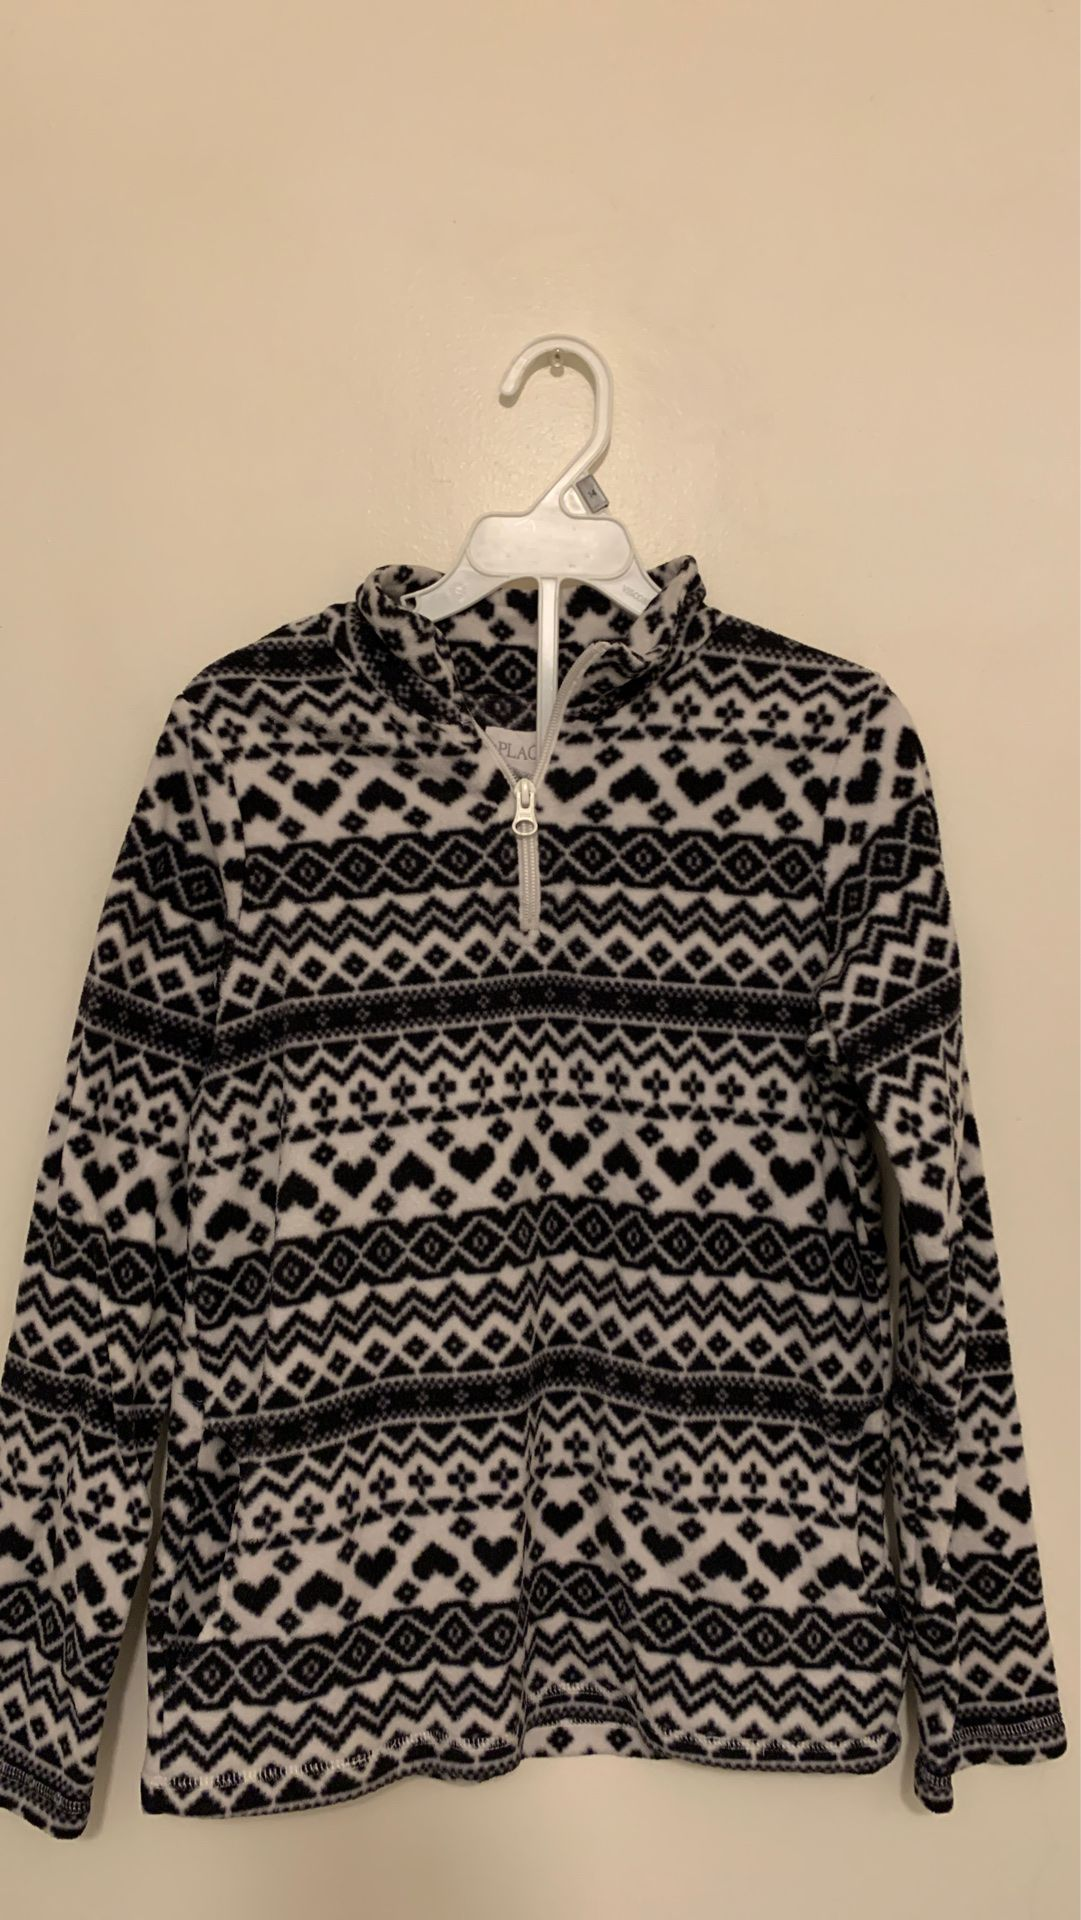 Sweater size 10/12